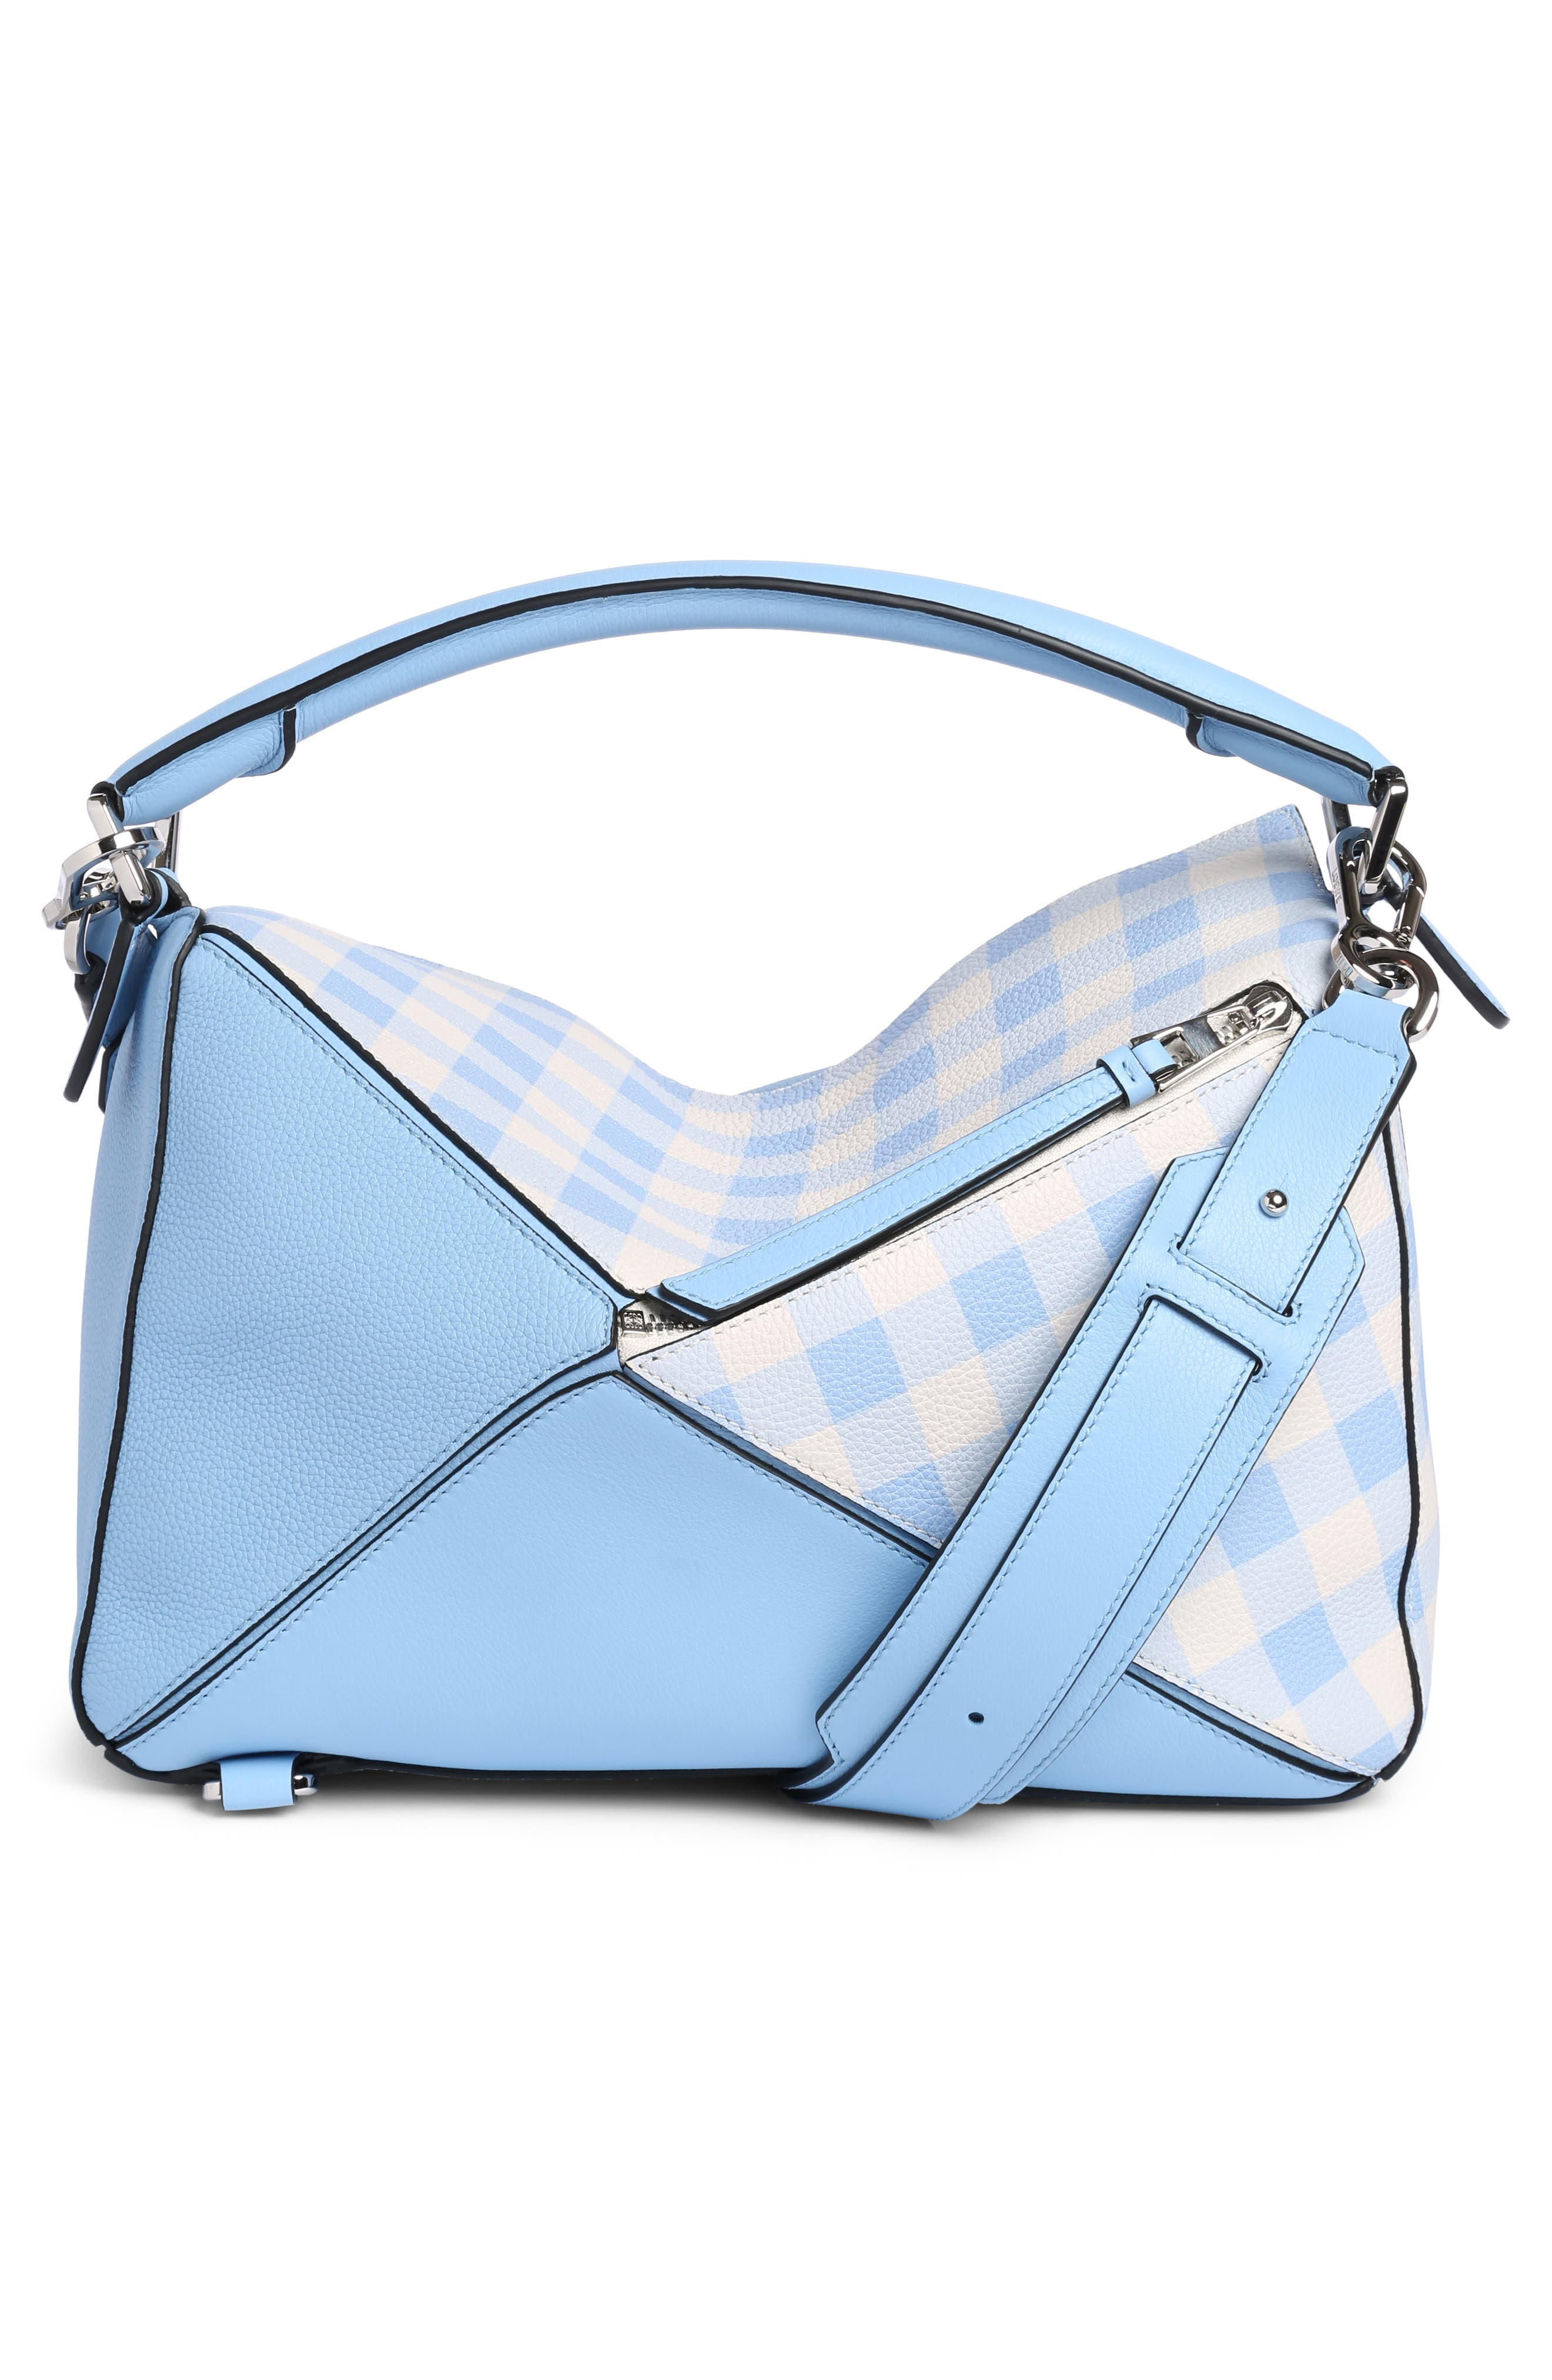 Puzzle Gingham Calfskin Leather Bag,                             Alternate thumbnail 2, color,                             455